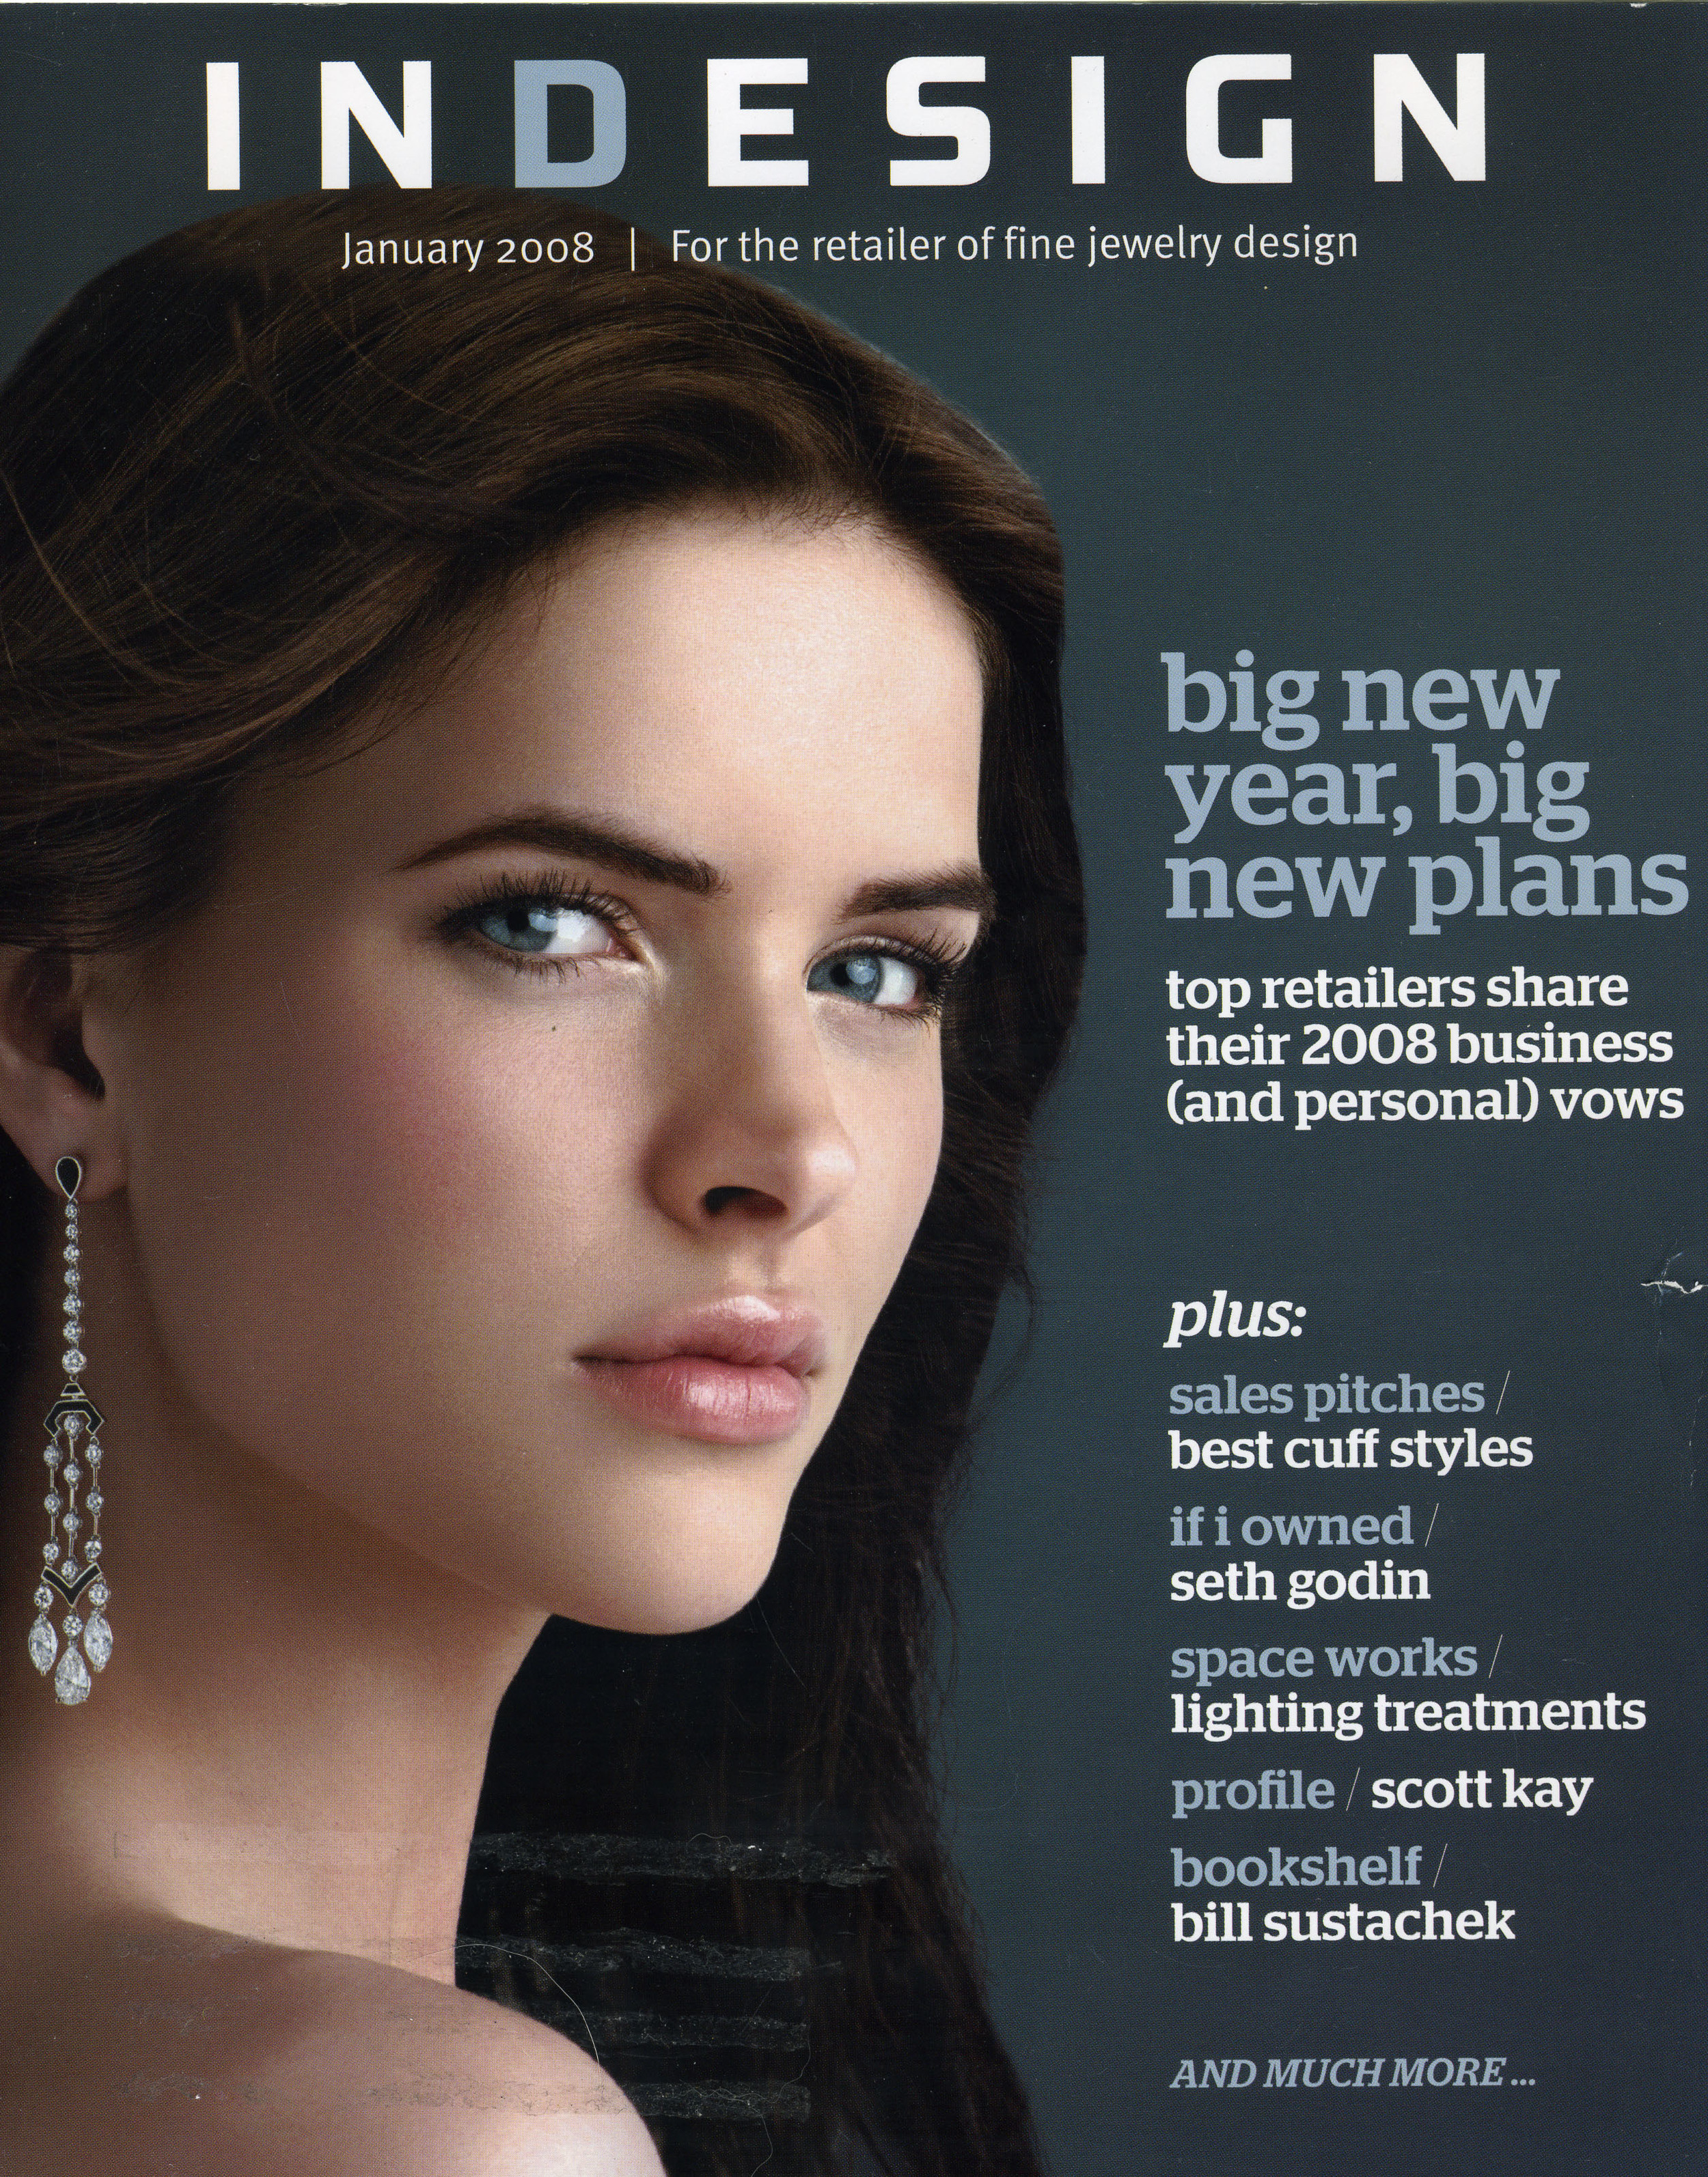 INDESIGN 0108 COVER.jpg